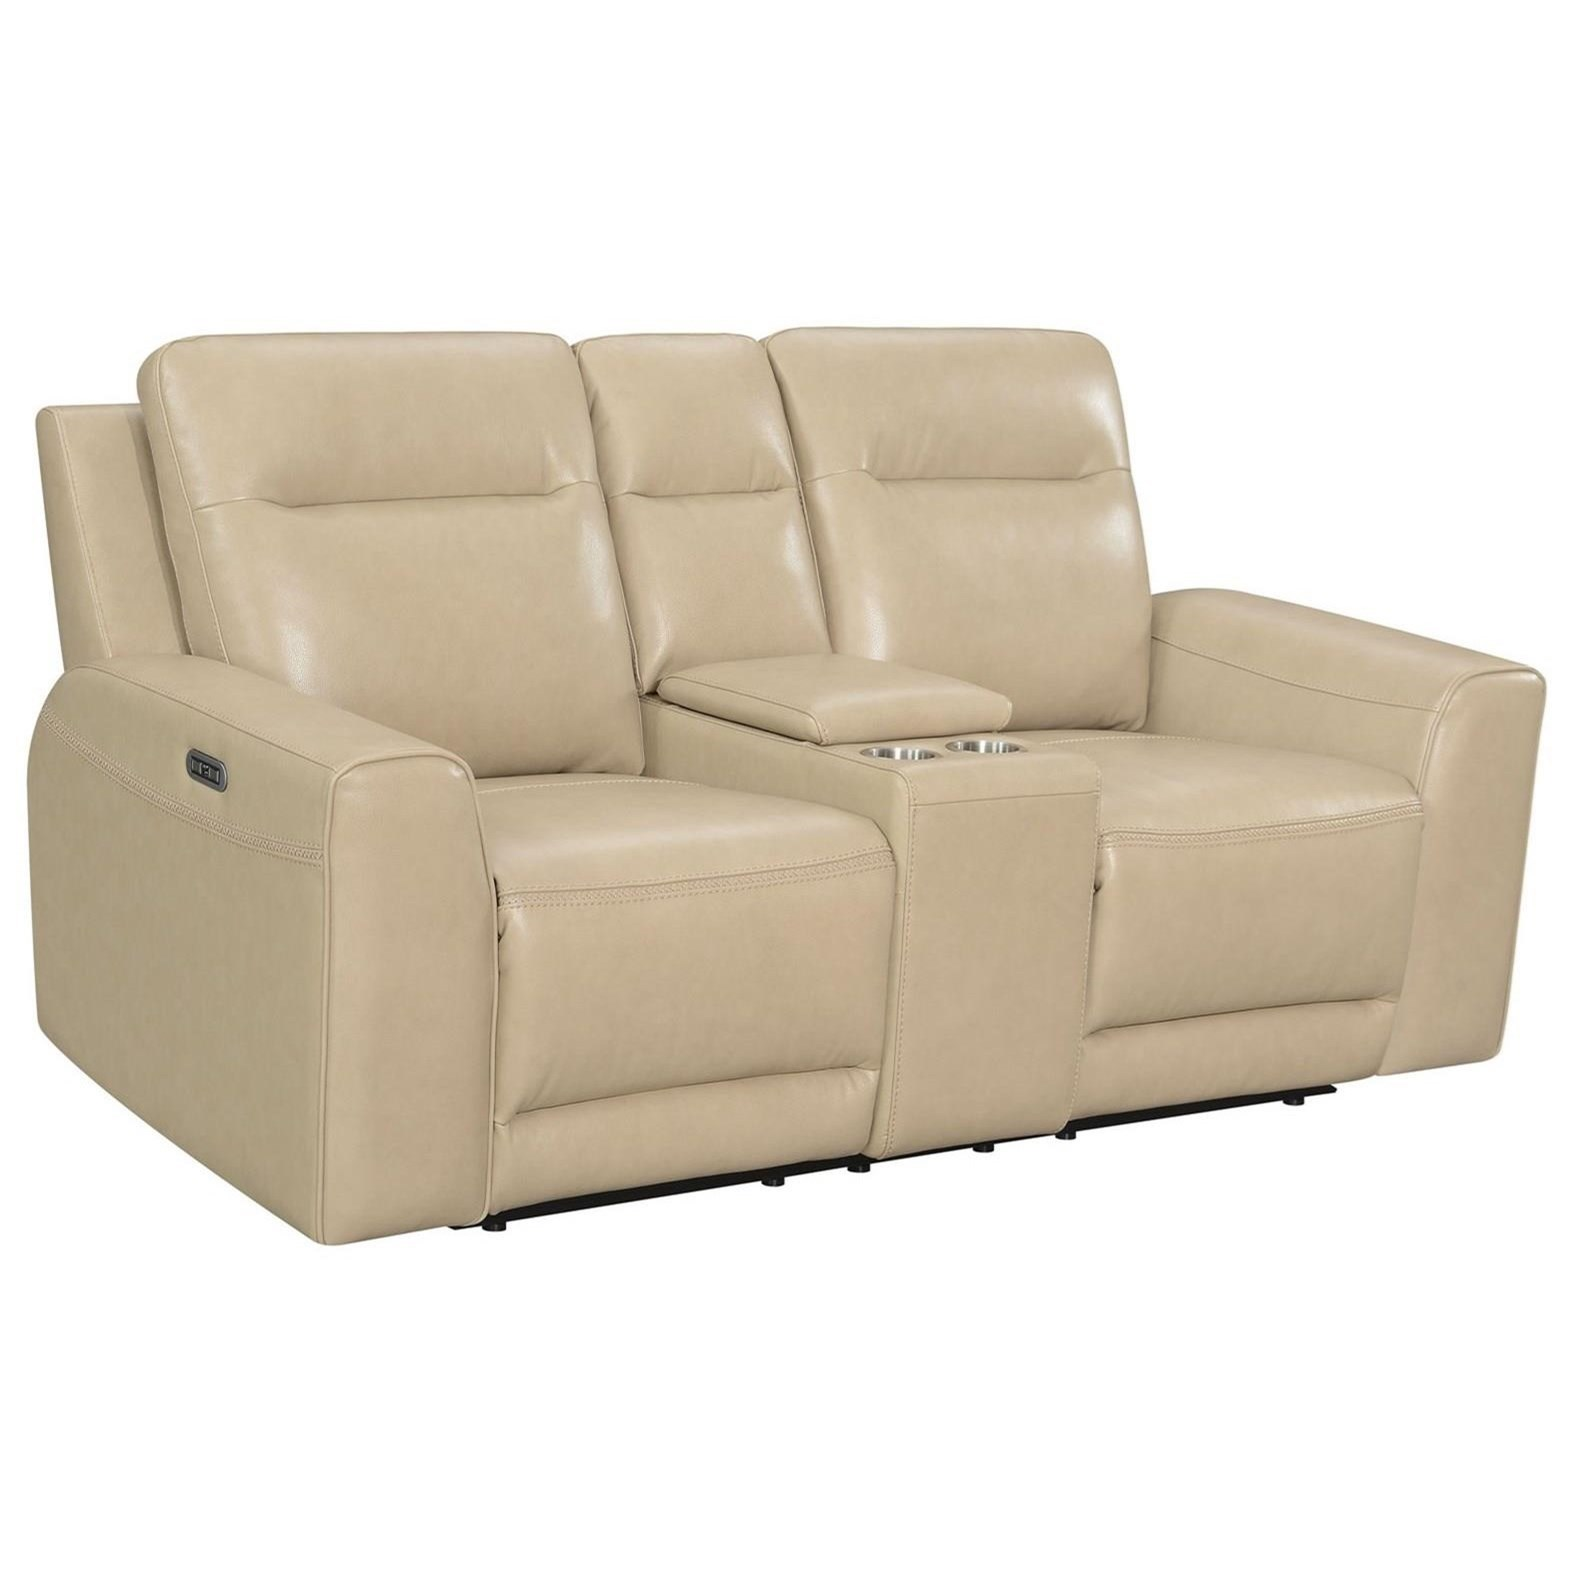 Doncella Dual-Power Console Loveseat by Steve Silver at Standard Furniture